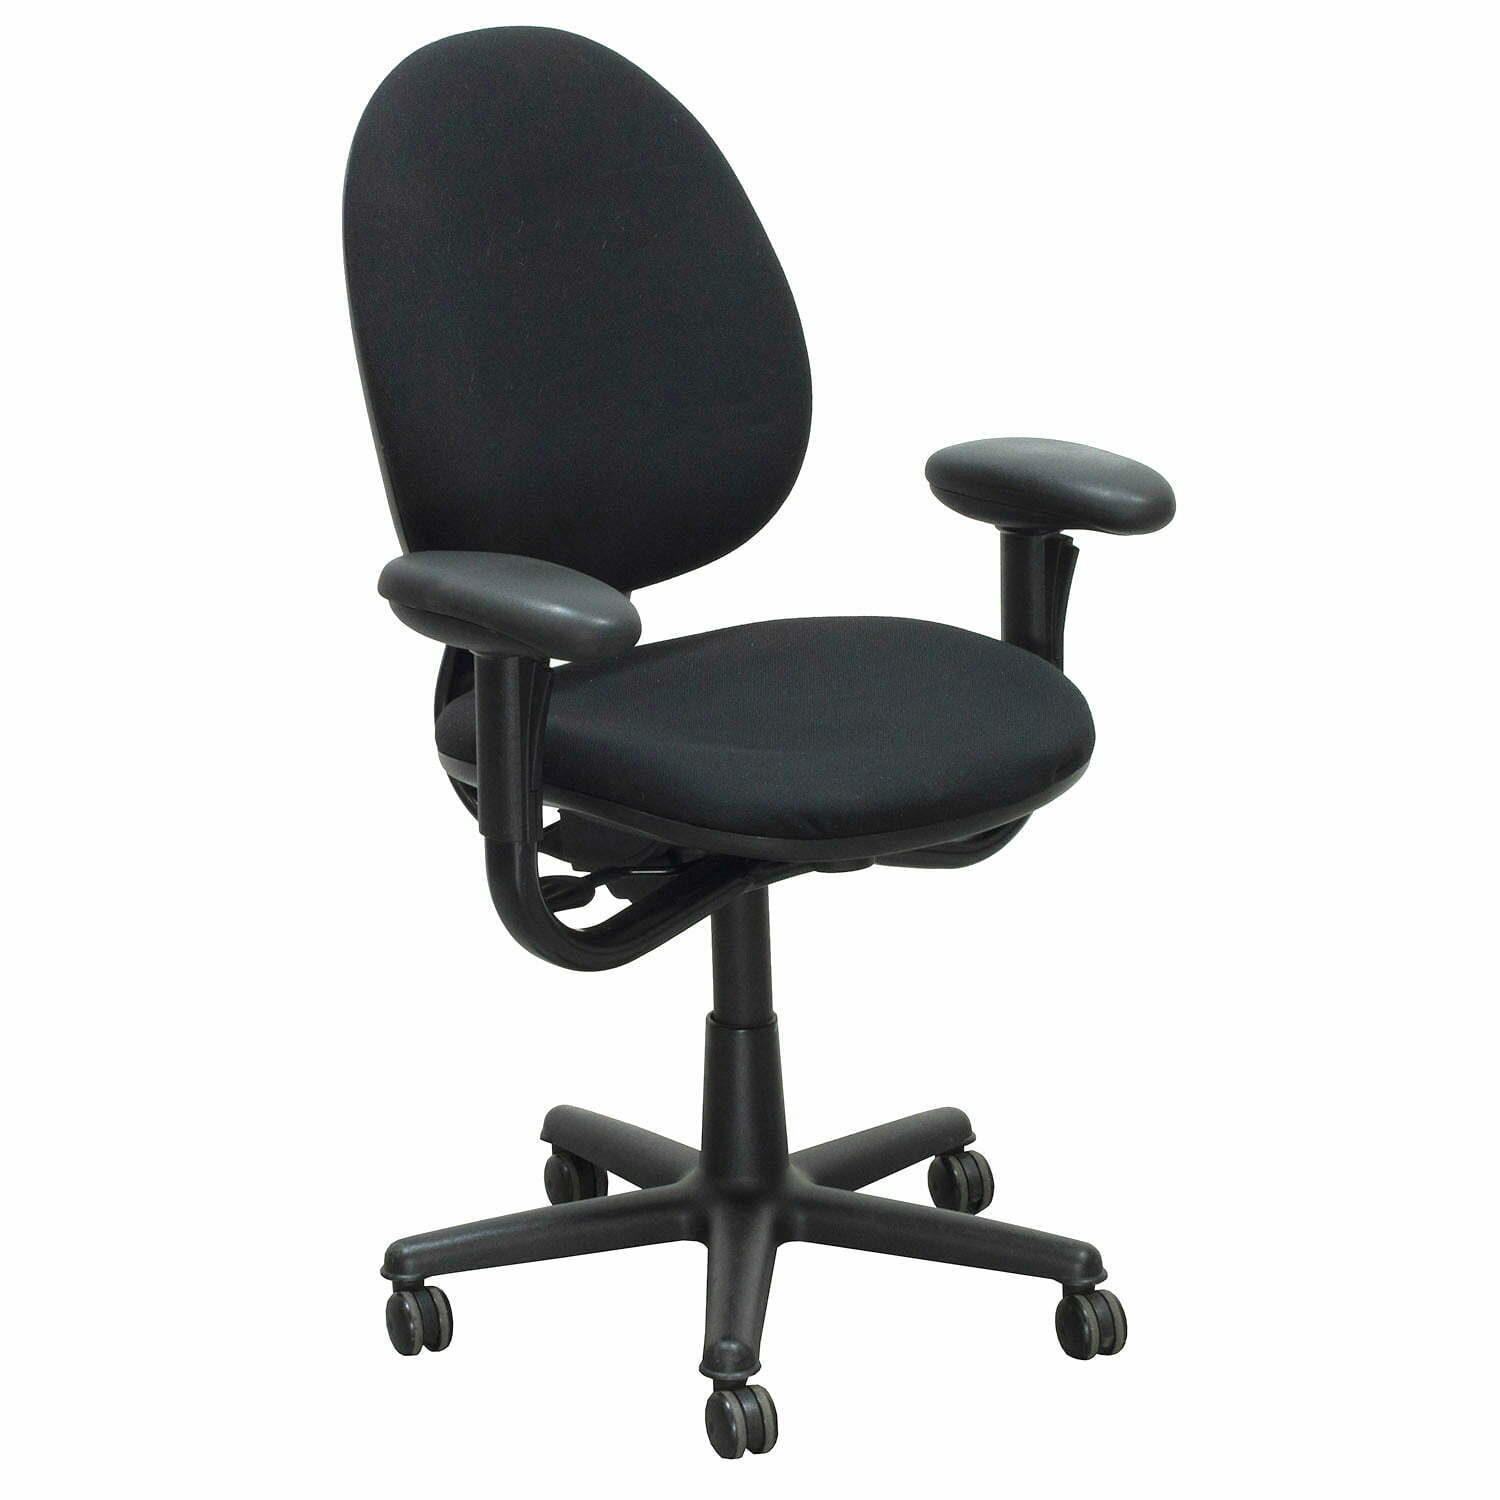 Steelcase Chair Steelcase Criterion Office Chair Unisource Office